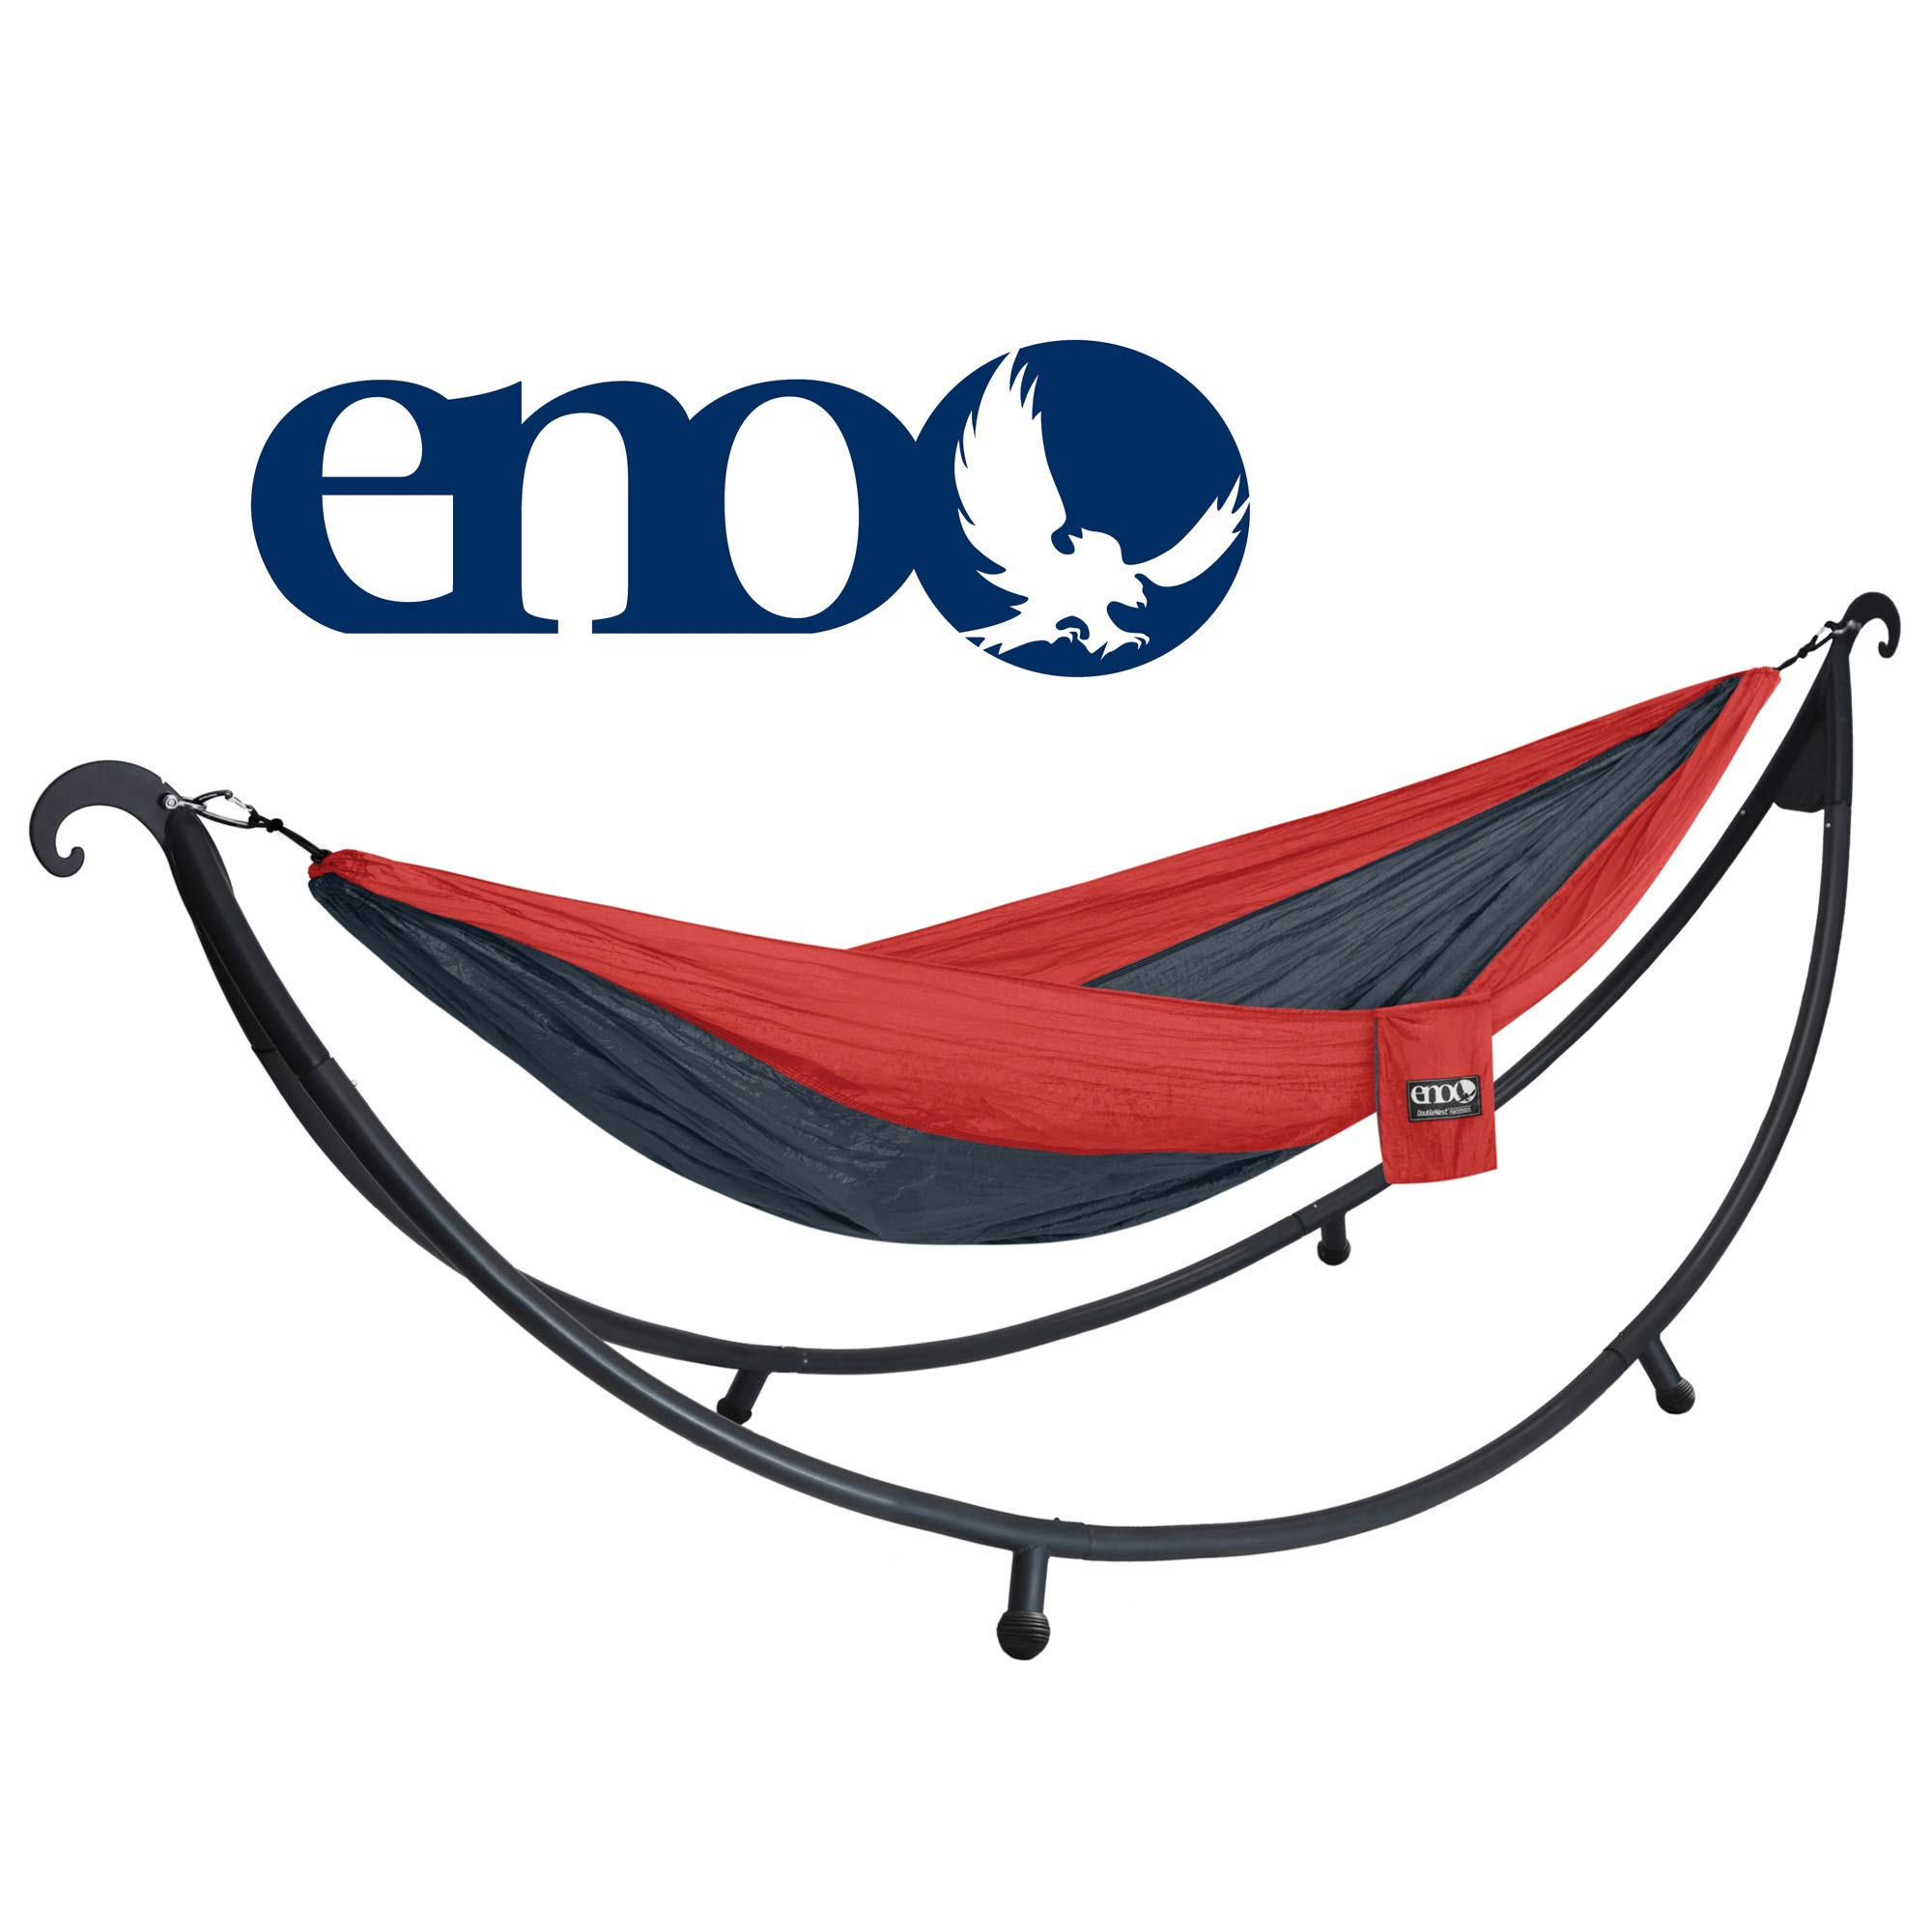 Eagles Nest Outfitters ENO DoubleNest 2-Person Hammock with SoloPod Hammock Stand Bundle, Red/Charcoal